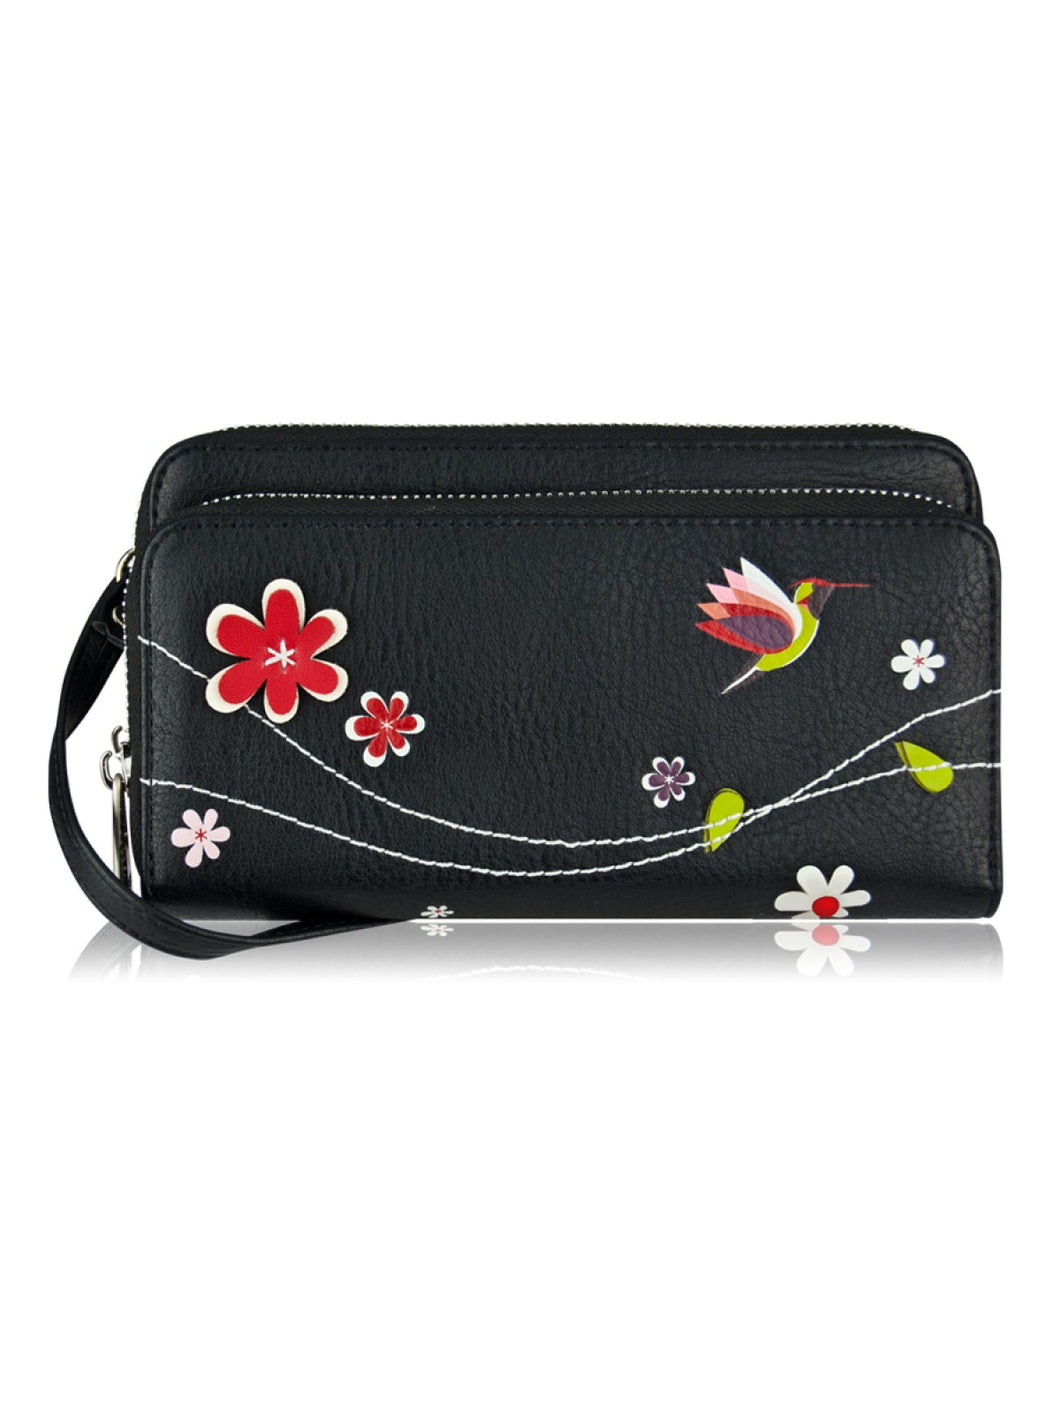 Libre iMini Black Wallet Purse